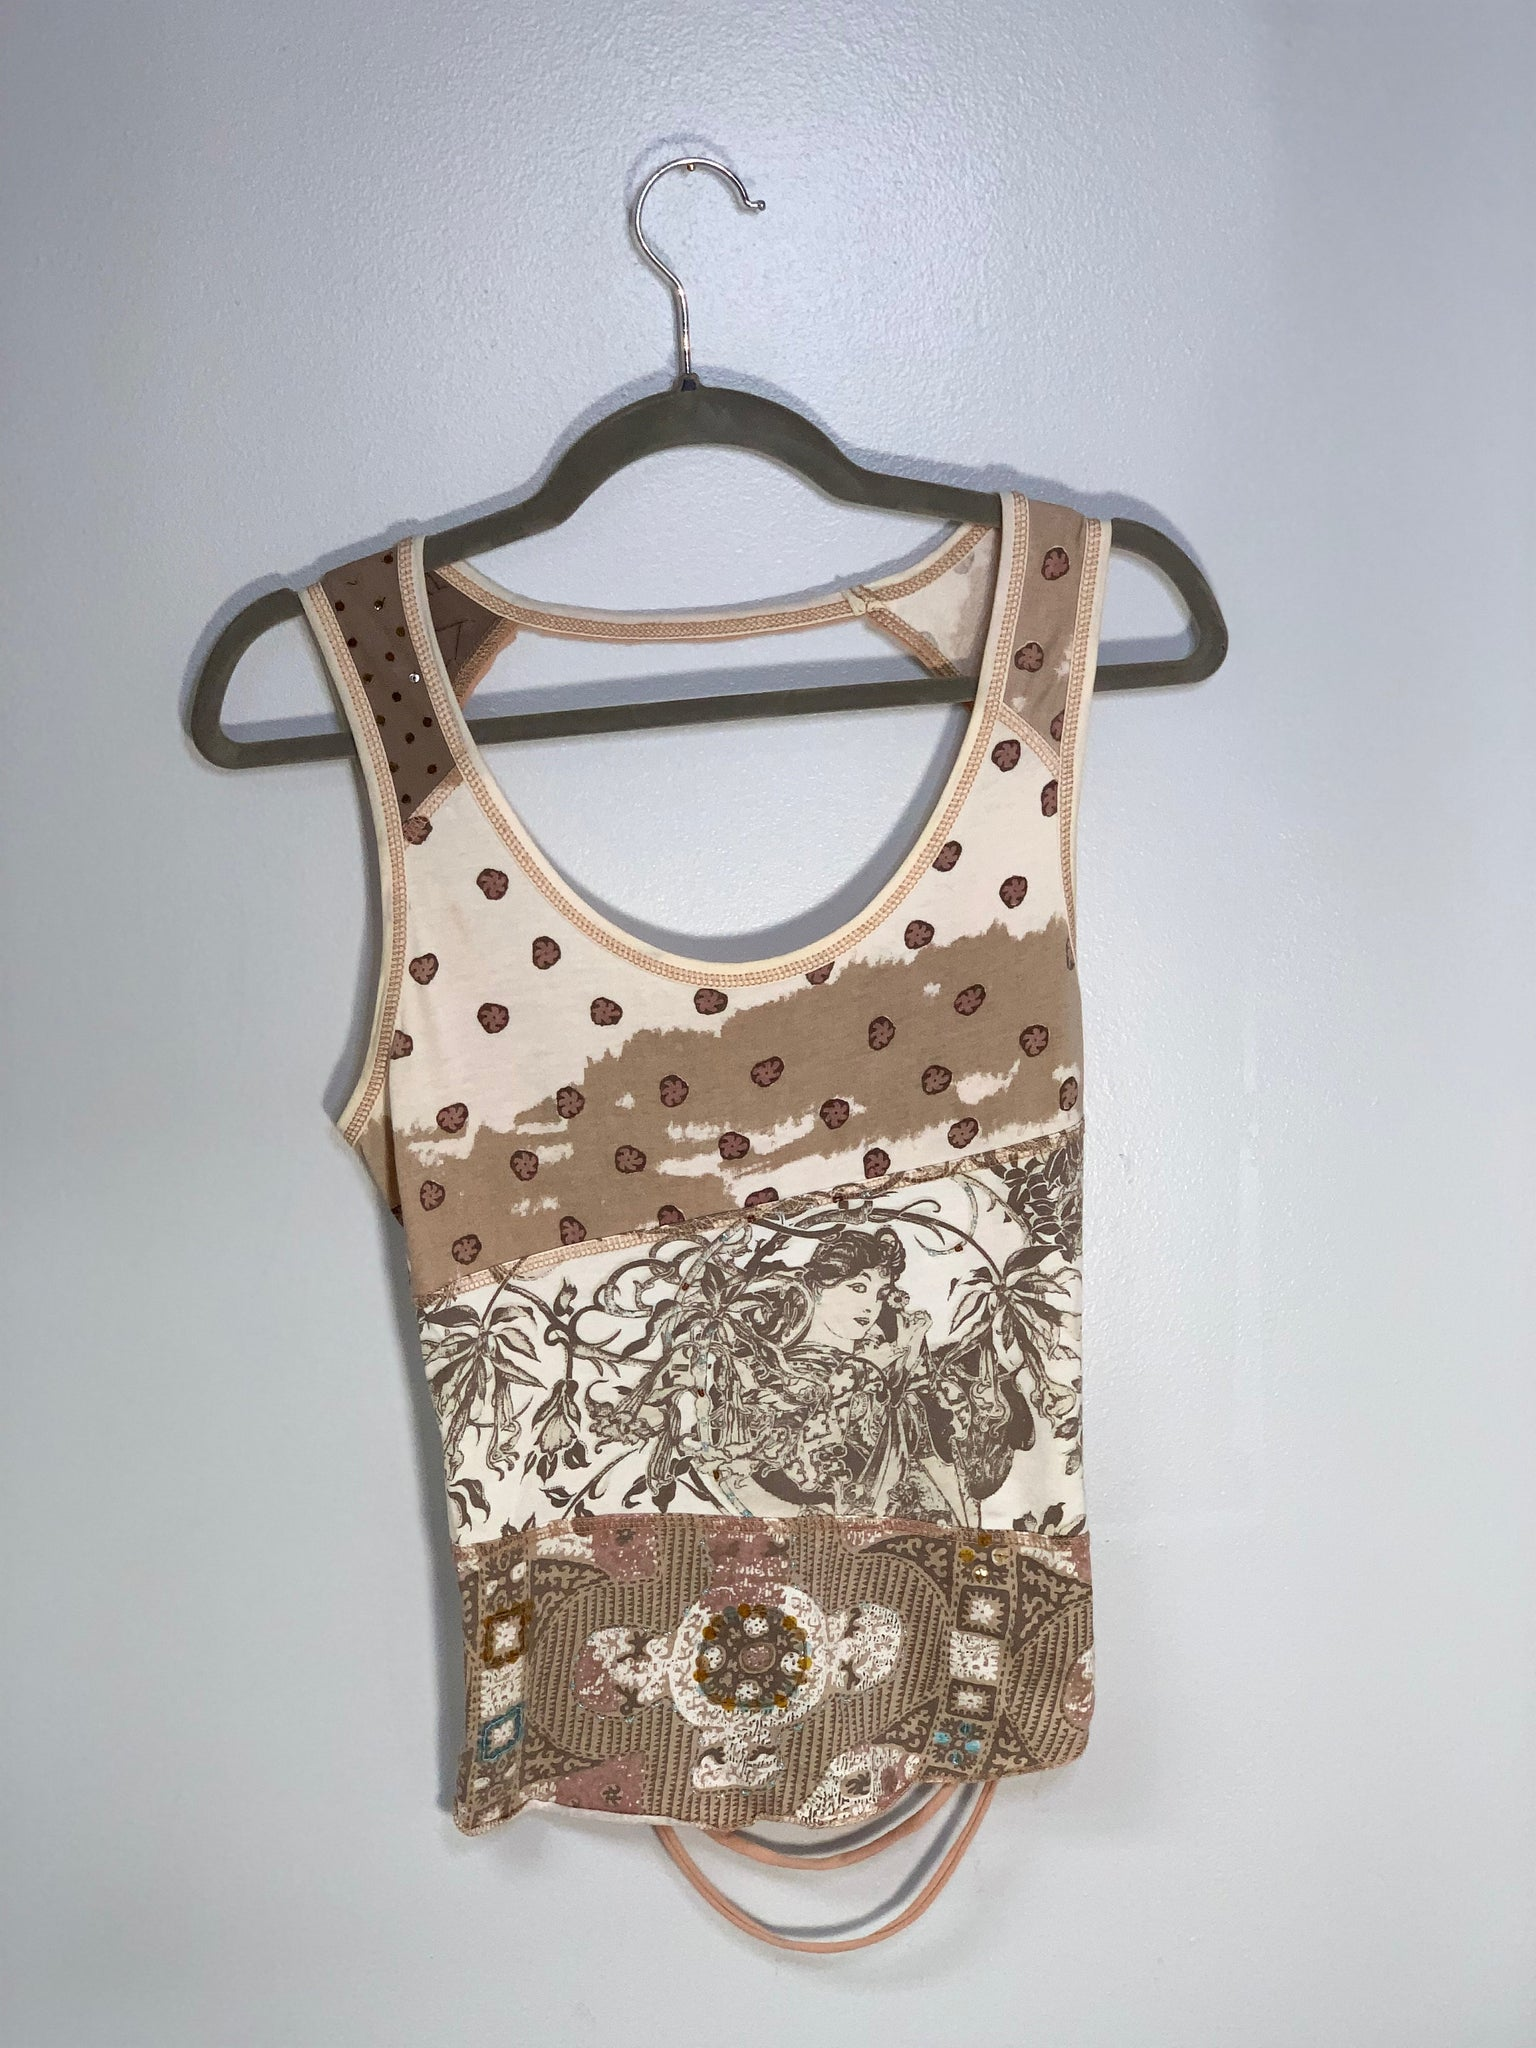 Vintage Print Tank Cut Up by Sniptease Embellished with Beads and Sequins